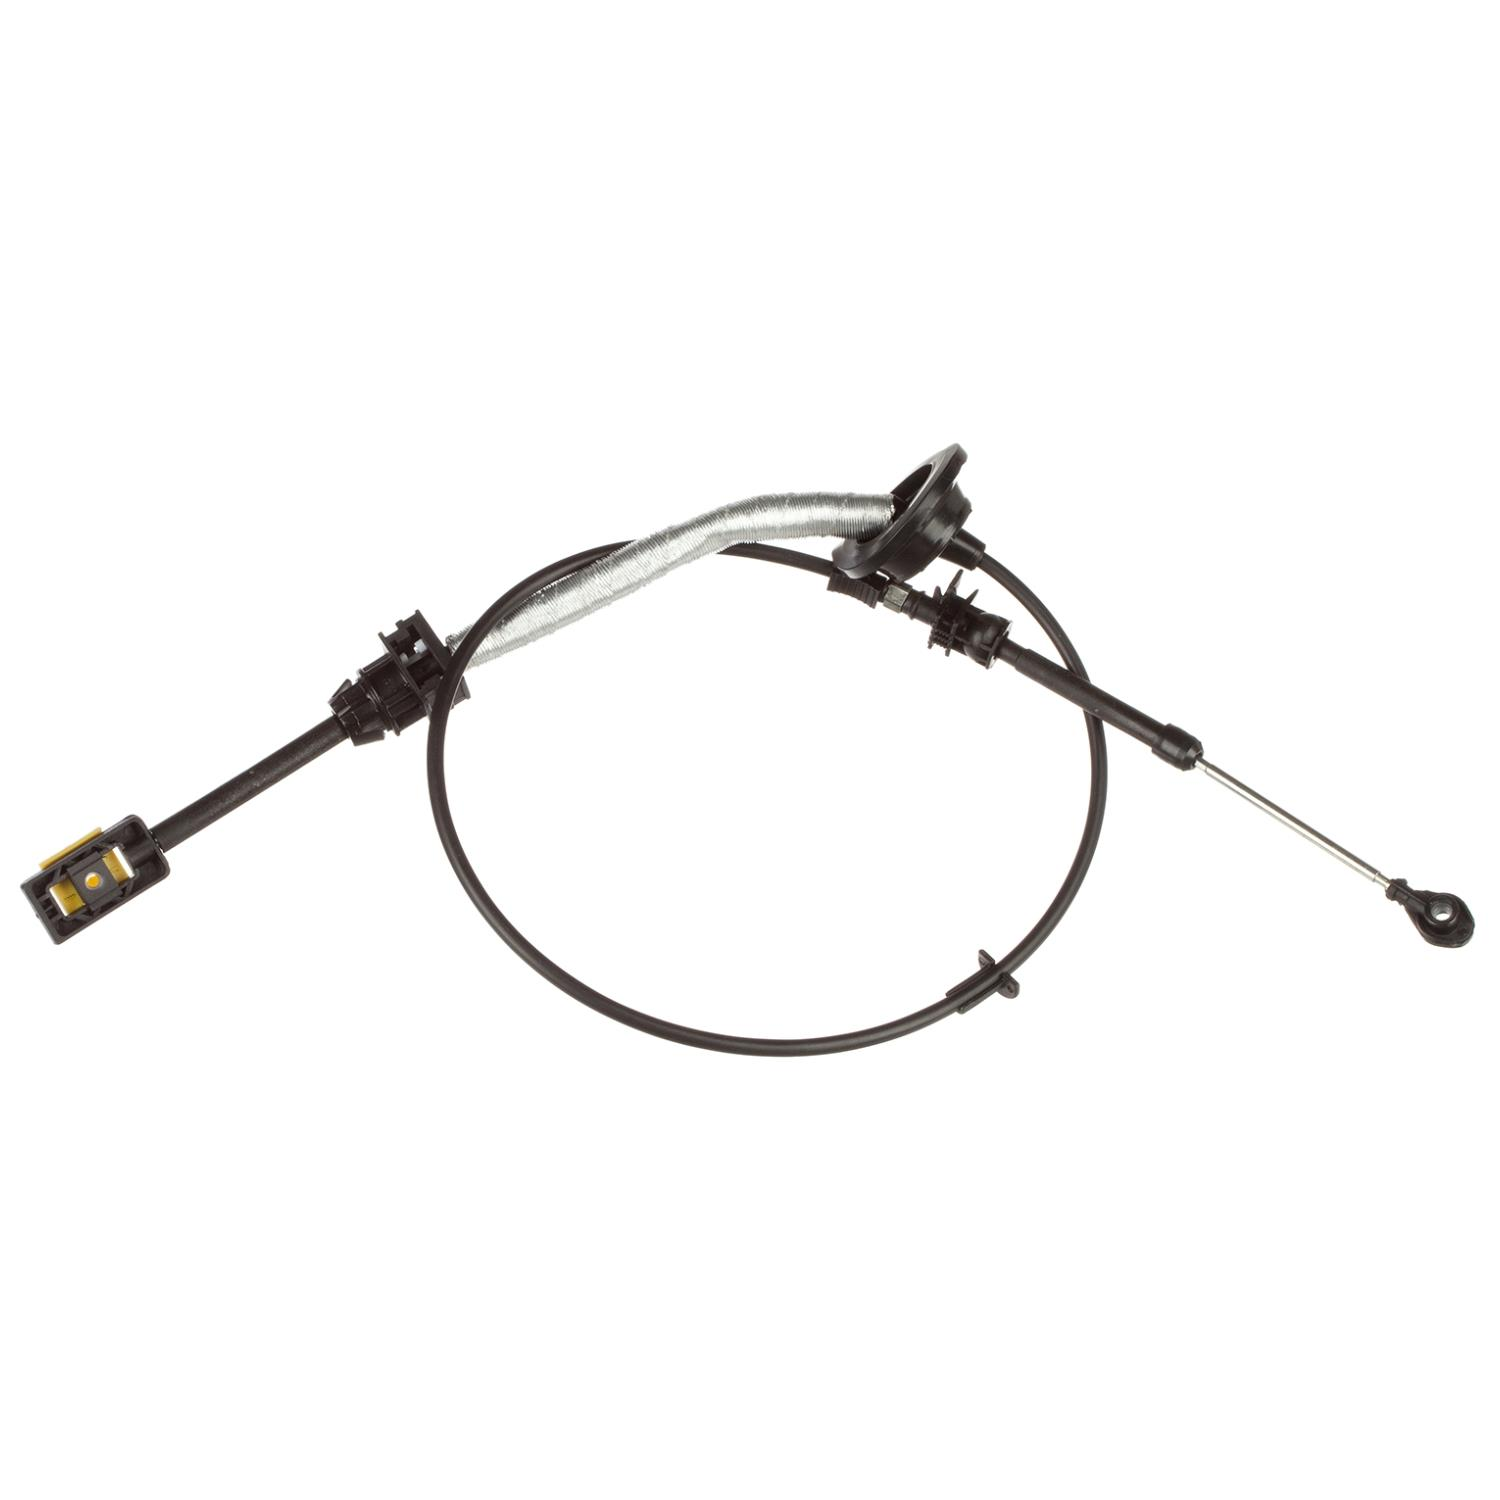 ATP Automotive Y-790 Auto Trans Shifter Cable